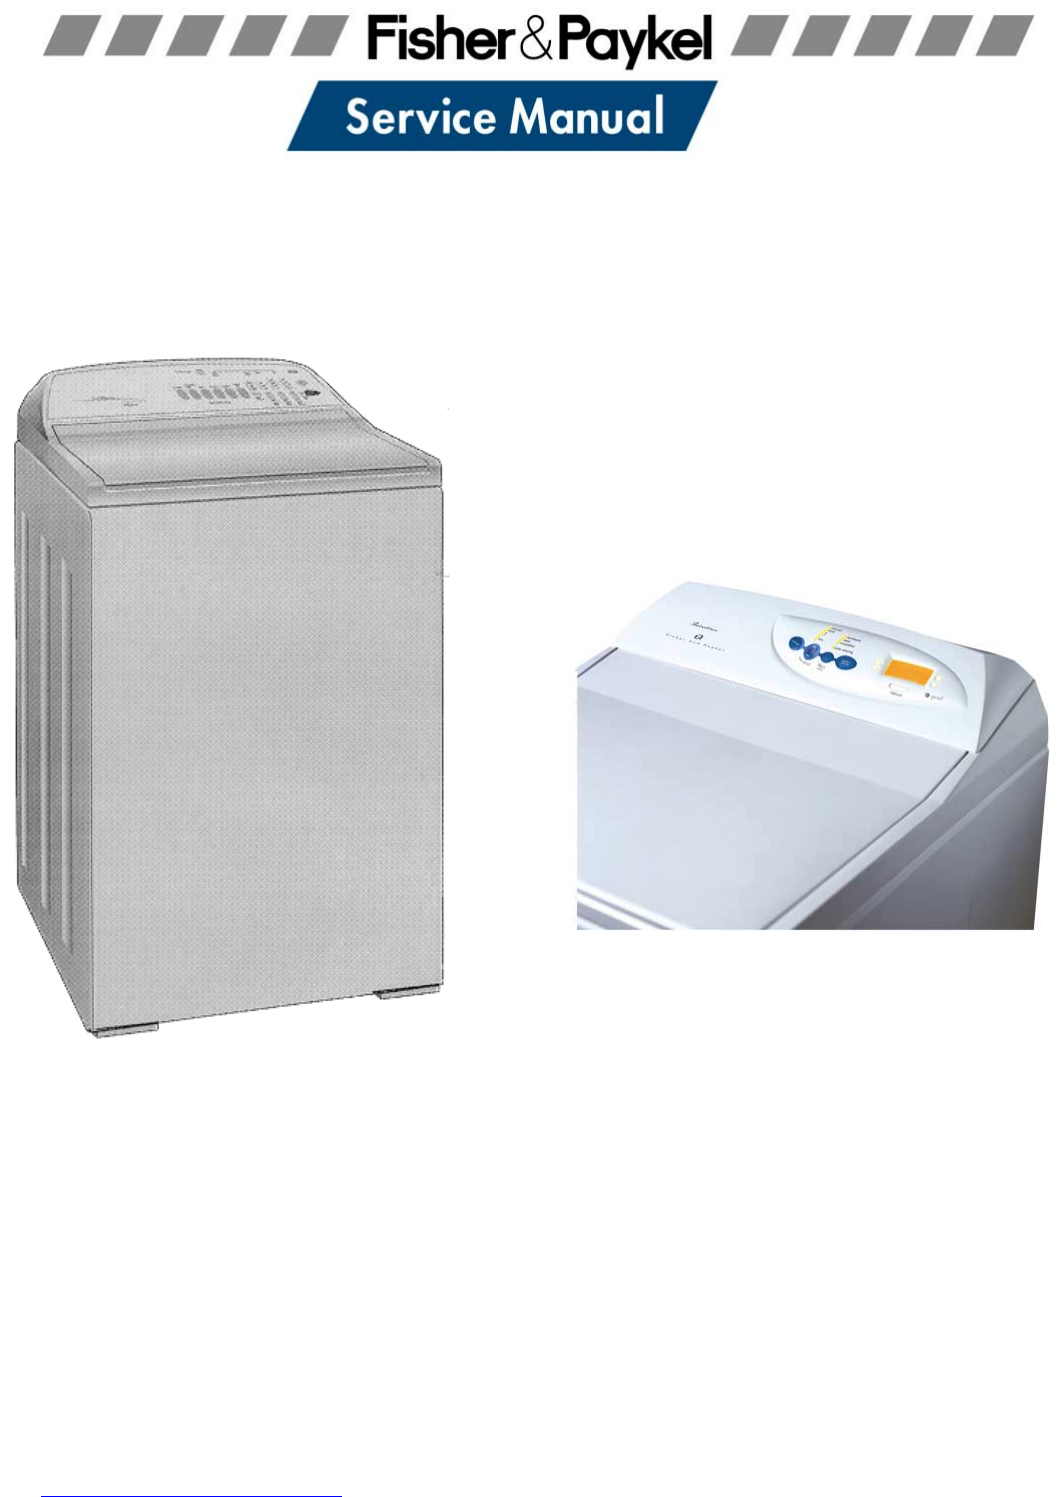 SMART DRIVE. ELECTRONIC WASHING MACHINE